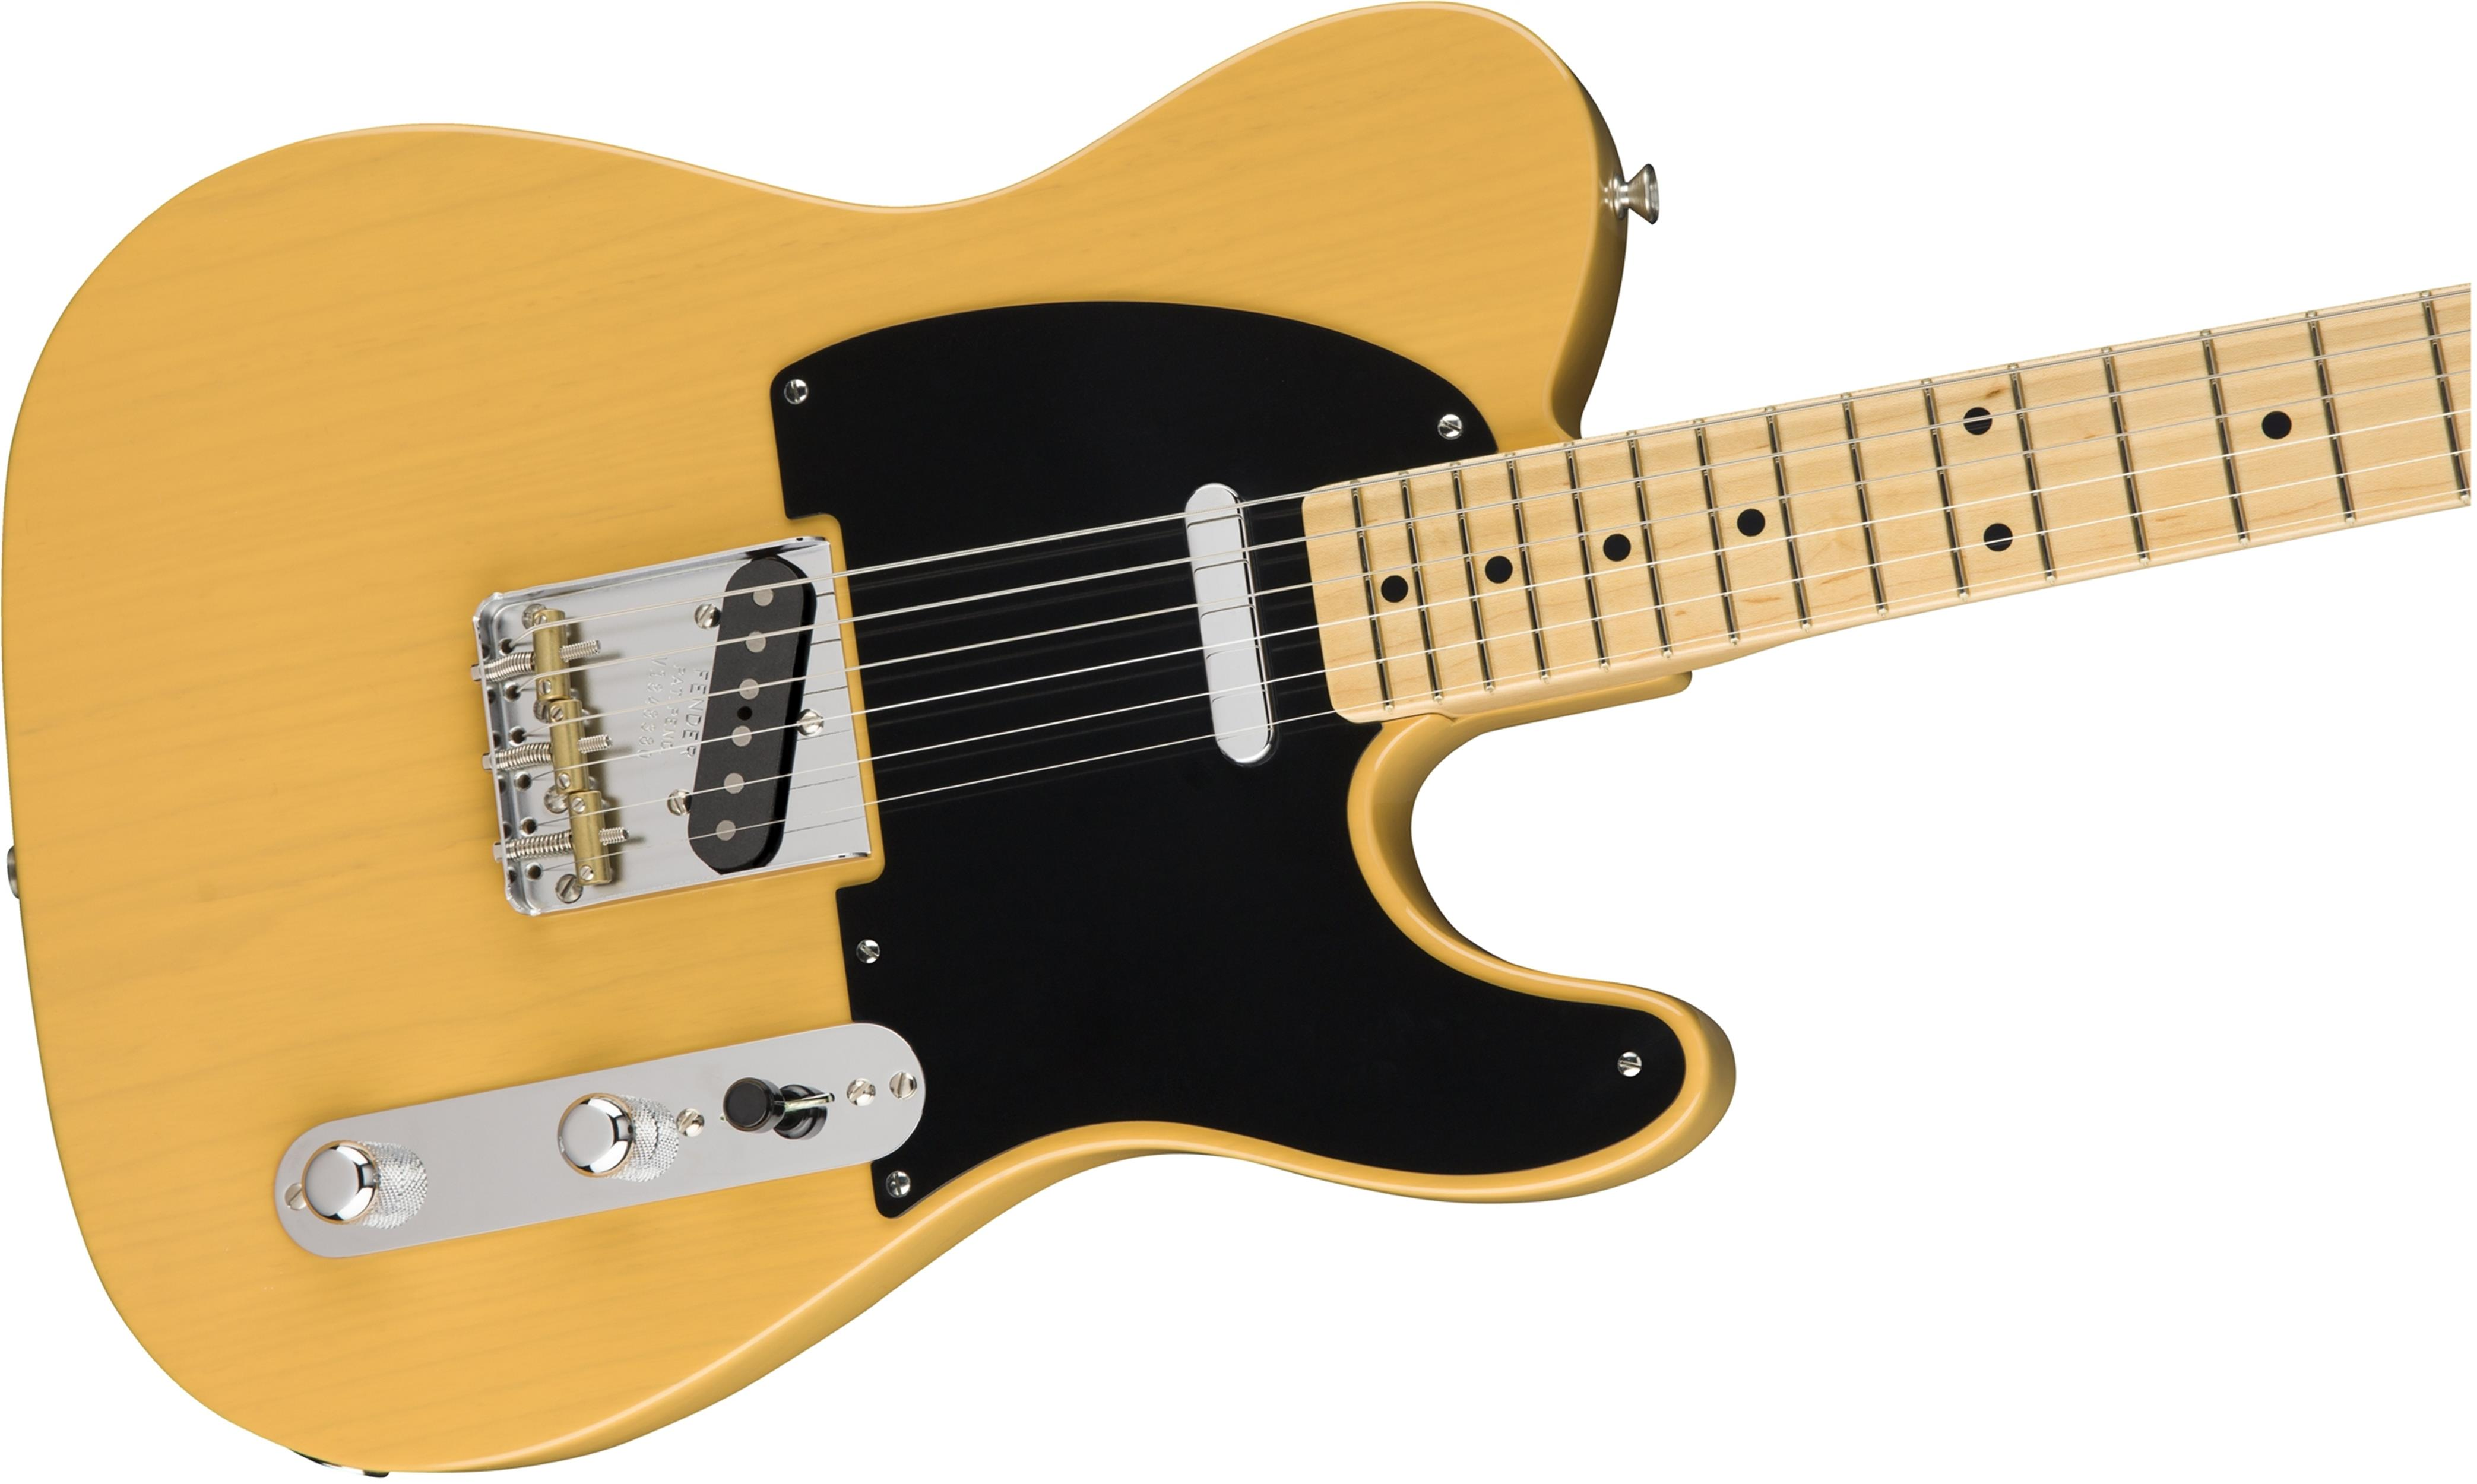 FENDER American Original 50 s Telecaster Butterscotch Blonde 0110132850